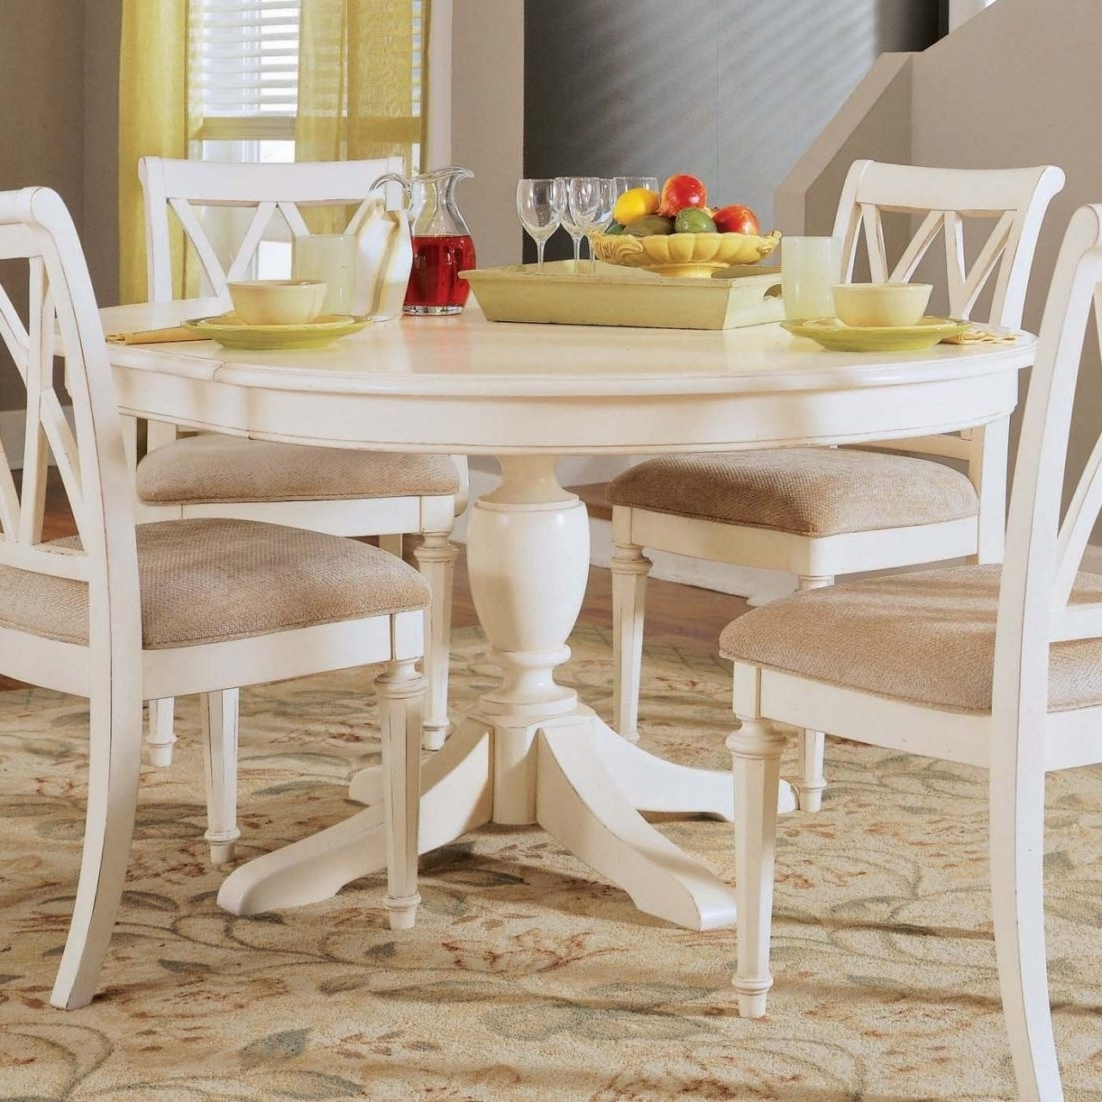 Most Recent Small White Dining Tables Regarding Dining Room Round White Table And Chairs Grey Small Kitchen Sets (View 8 of 25)